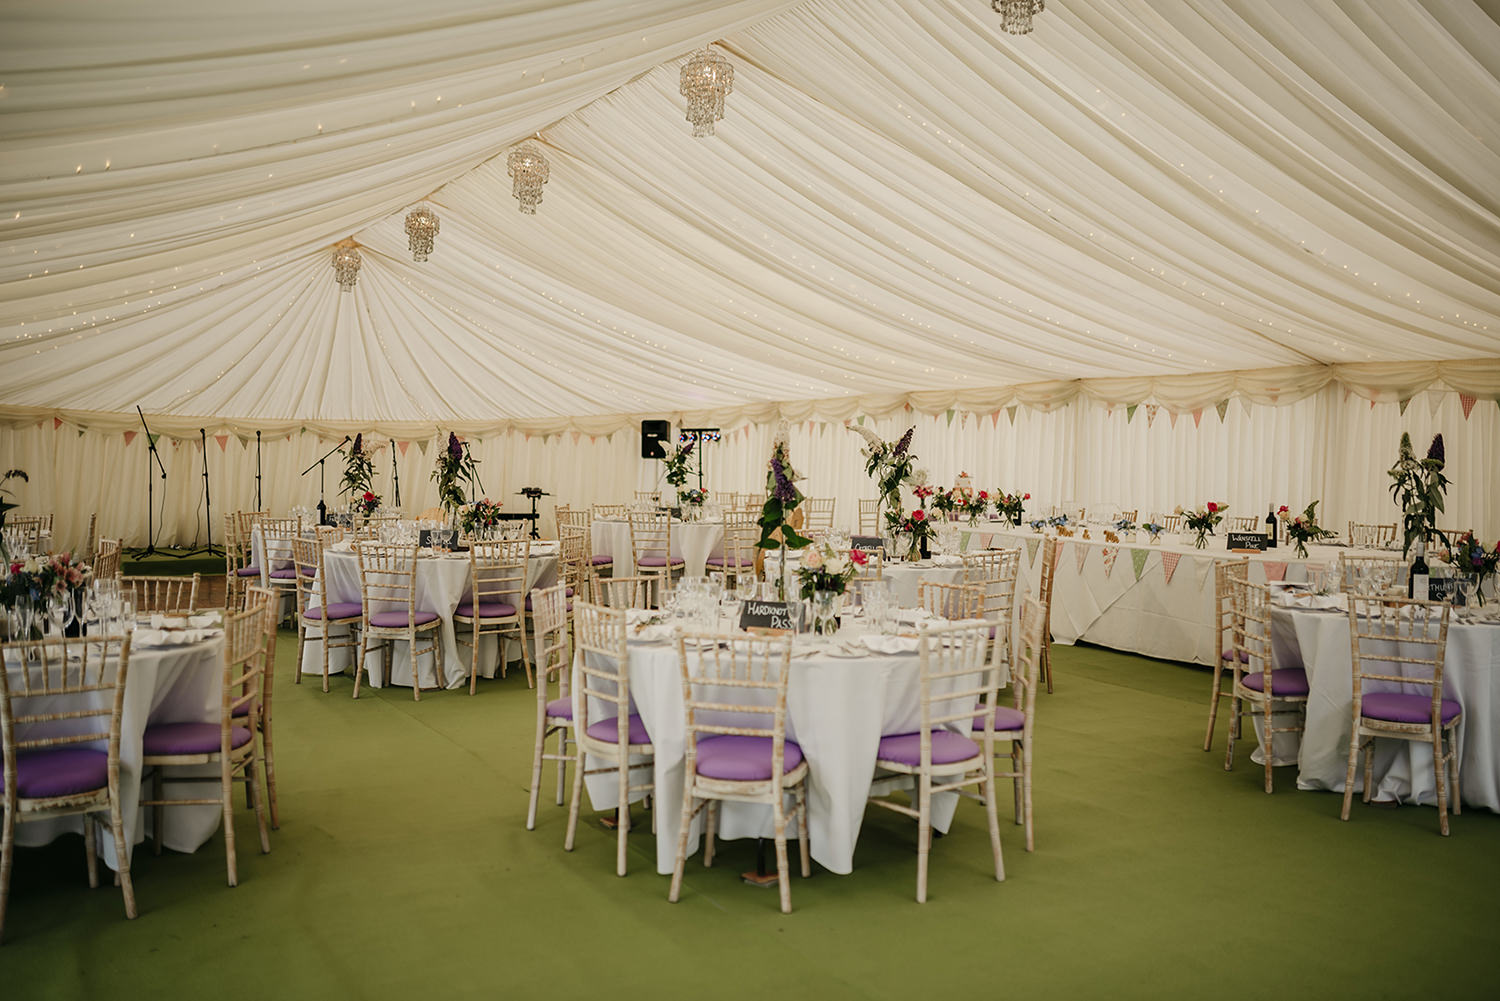 Wedding reception marquee provided by A3 Marquees